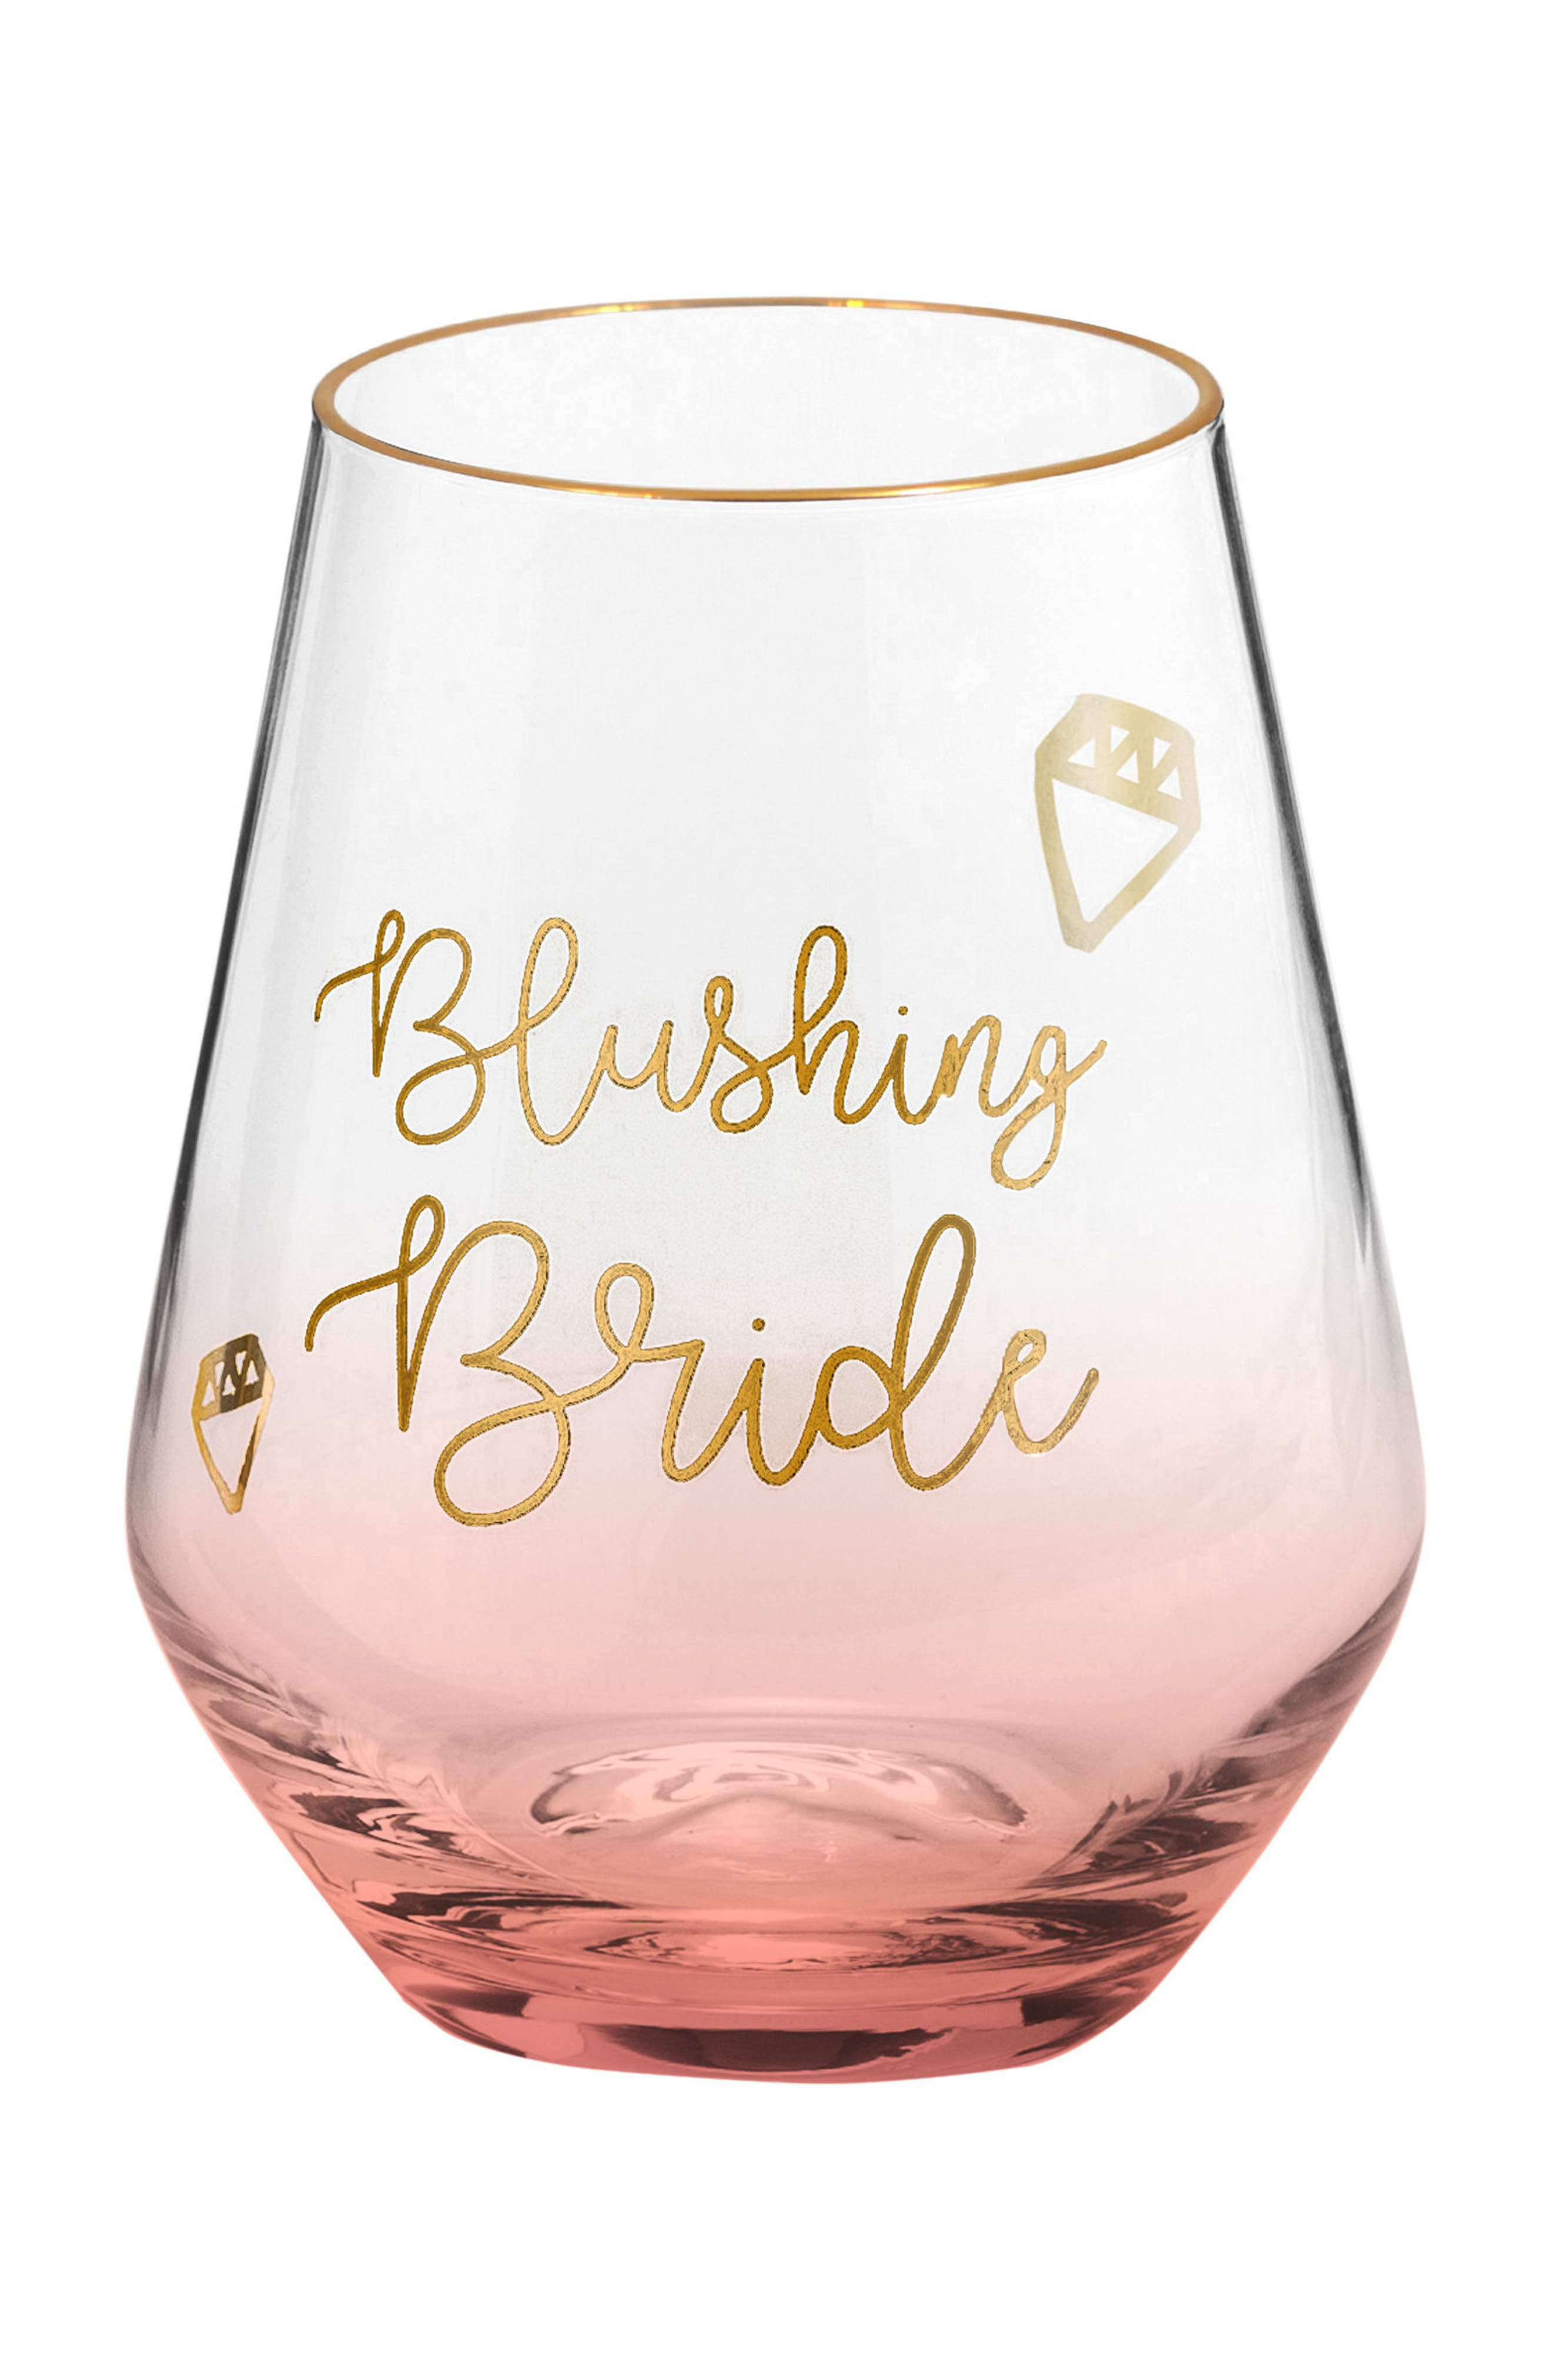 Blushing Bride Stemless Wine Glass,                         Main,                         color, Pink Gold